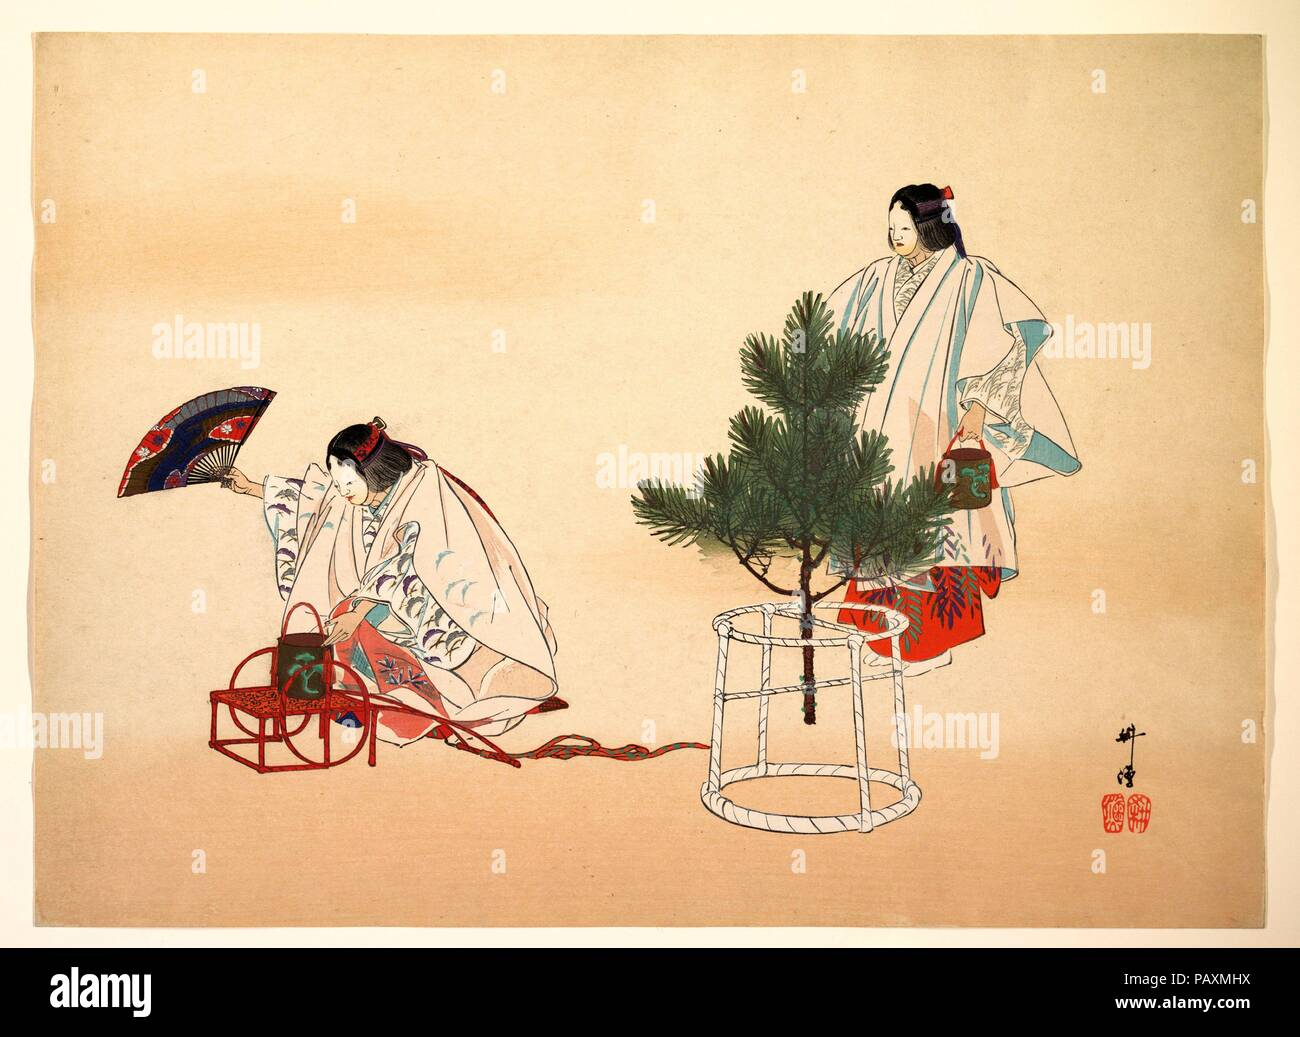 Scene from the Noh play 'Matsukaze'. Artist: Tsukioka Kogyo (Japanese, 1869-1927). Culture: Japan. Dimensions: 14 1/2 x 20 in. (36.8 x 50.8 cm). Date: ca. 1910.  In Matsukaze, still one of the most frequently performed Noh plays, masked actors in gorgeous robes evoke the tragic love of the two sisters Matsukaze and Murasame with only simple buckets as props. Museum: Metropolitan Museum of Art, New York, USA. - Stock Image